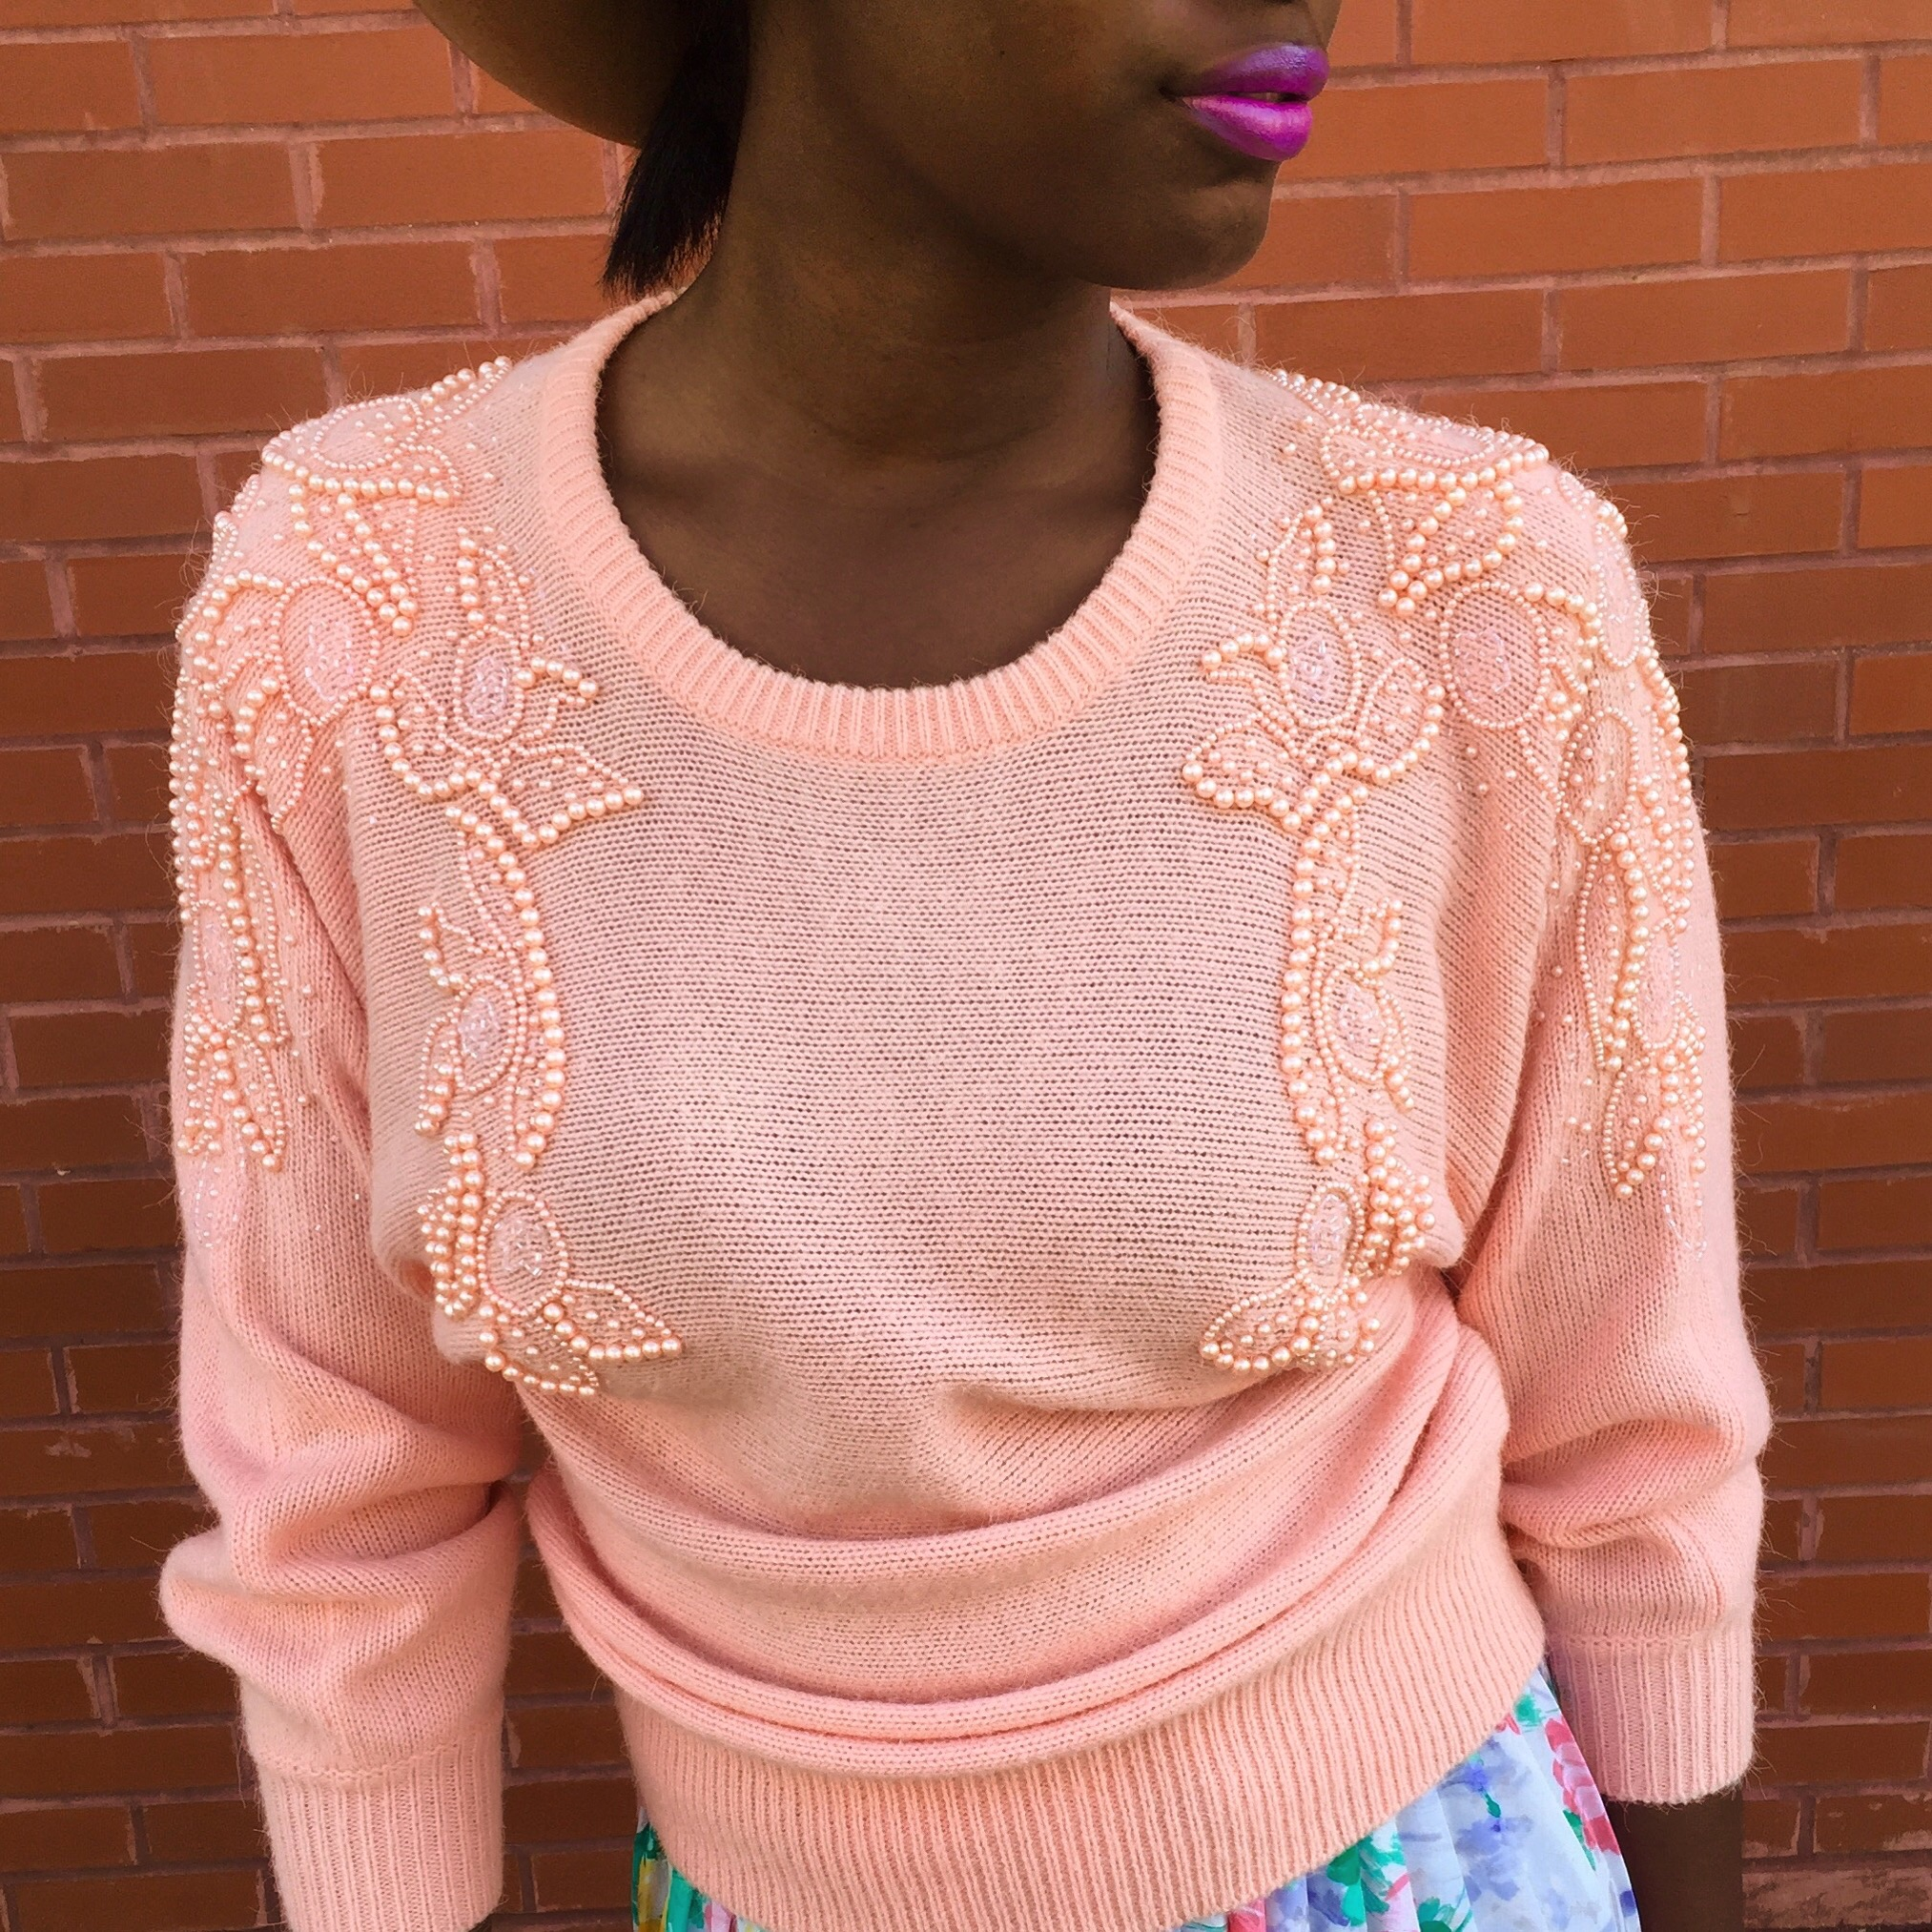 Pearled Pink Sweater, $40, PSB Vintage